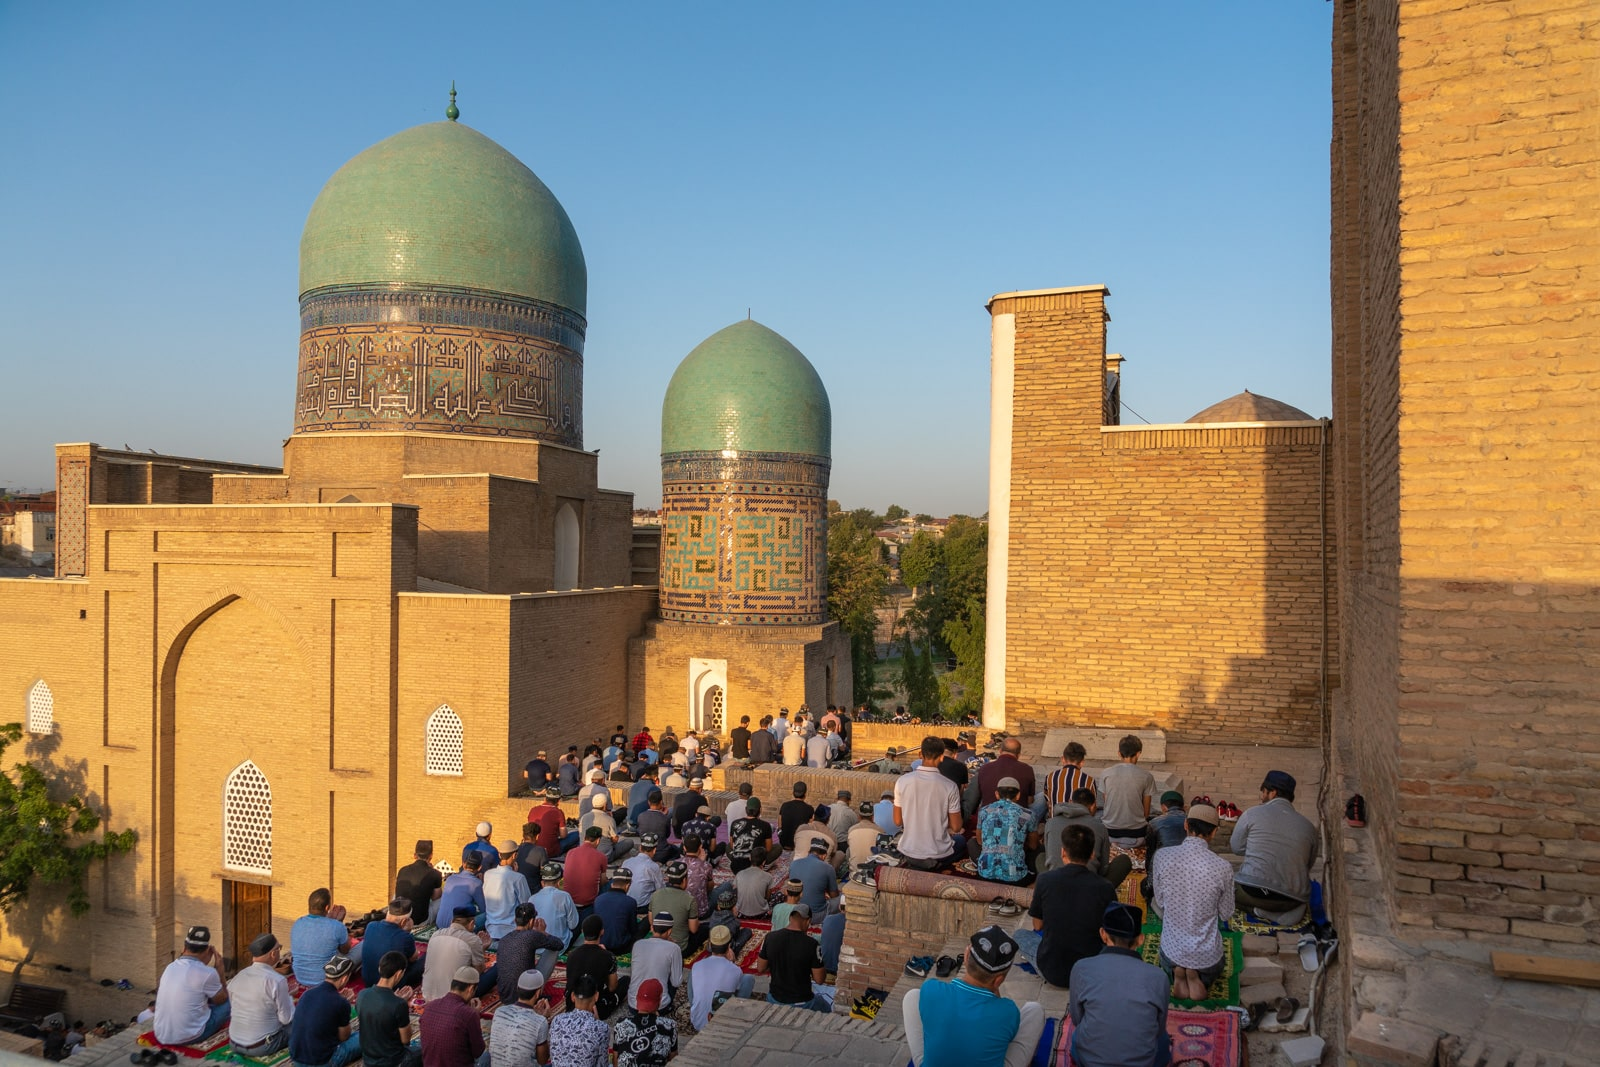 Men praying for Eid outside the Shah-i-Zinda necropolis in Samarkand, Uzbekistan